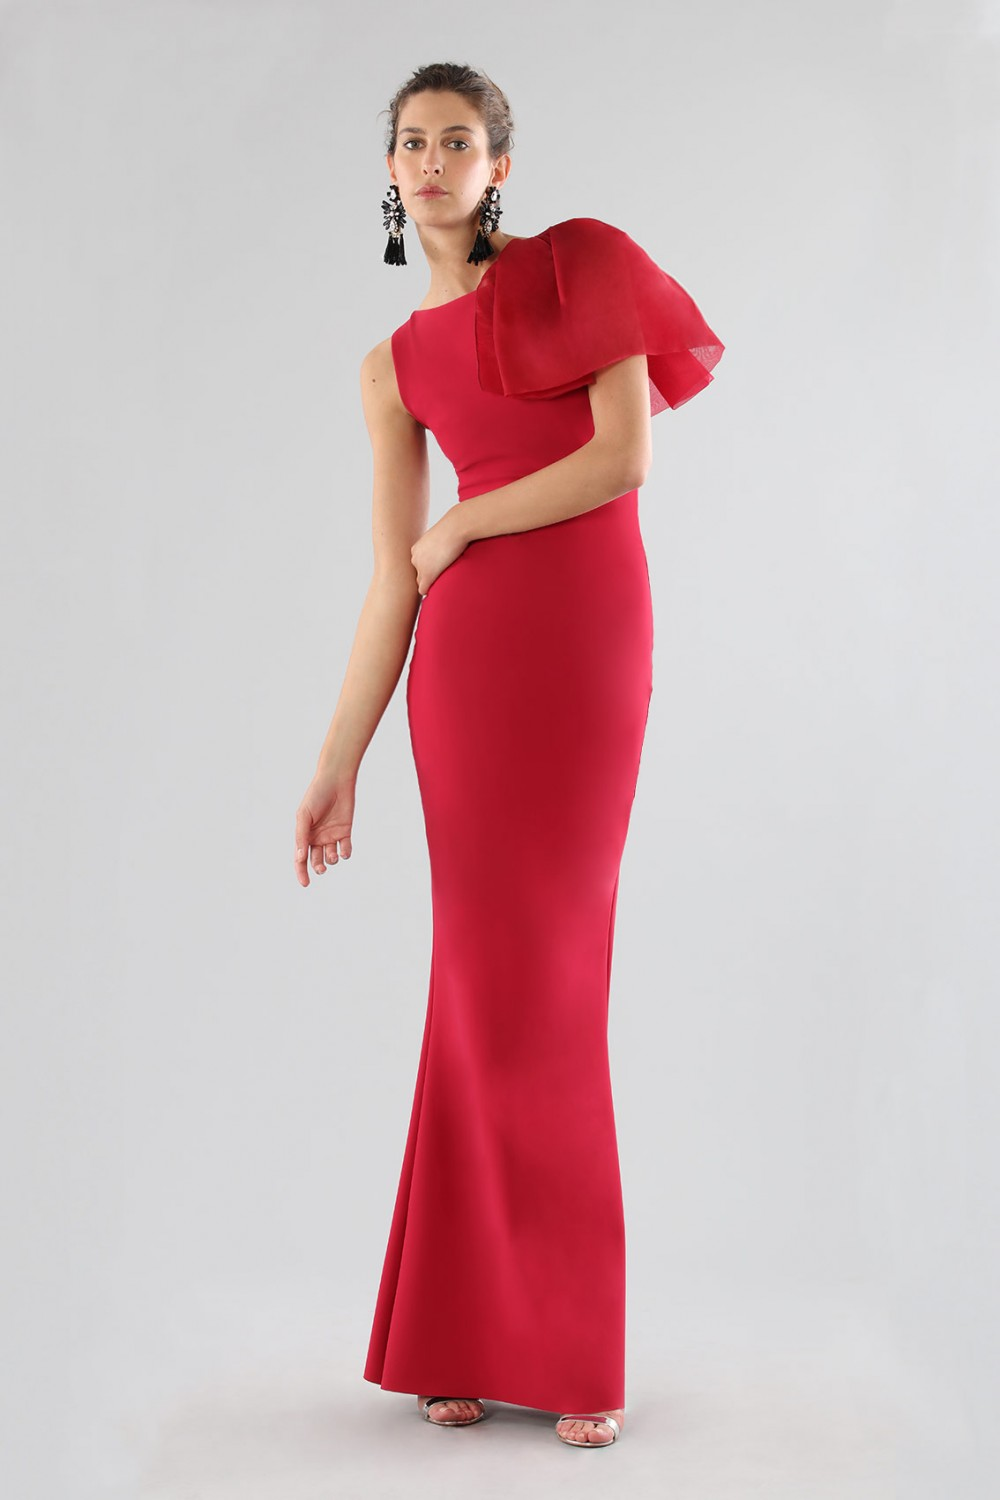 Cherry dress with side ruffles